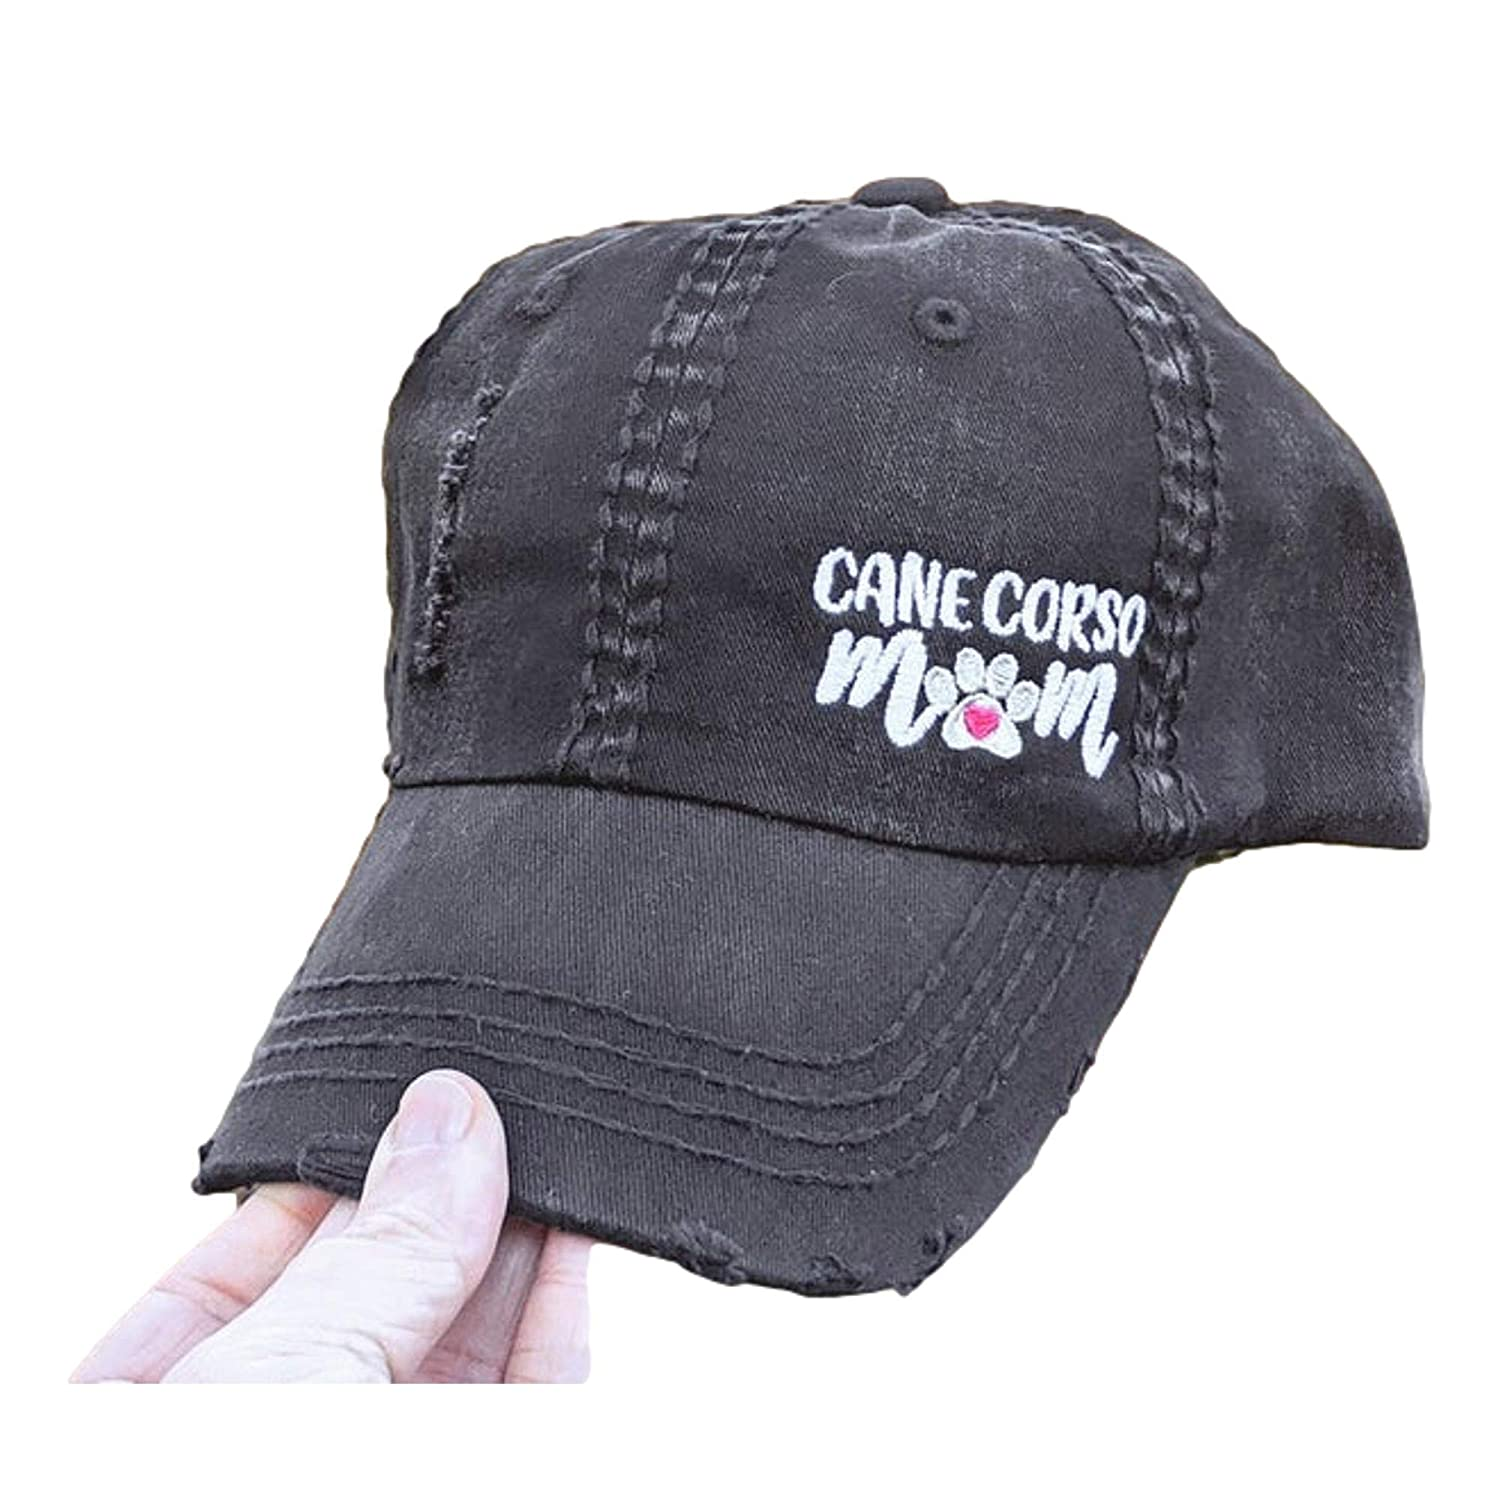 Loaded Lids Customized Women's Mom Shipping included Corso Cane Hat Clearance SALE! Limited time!